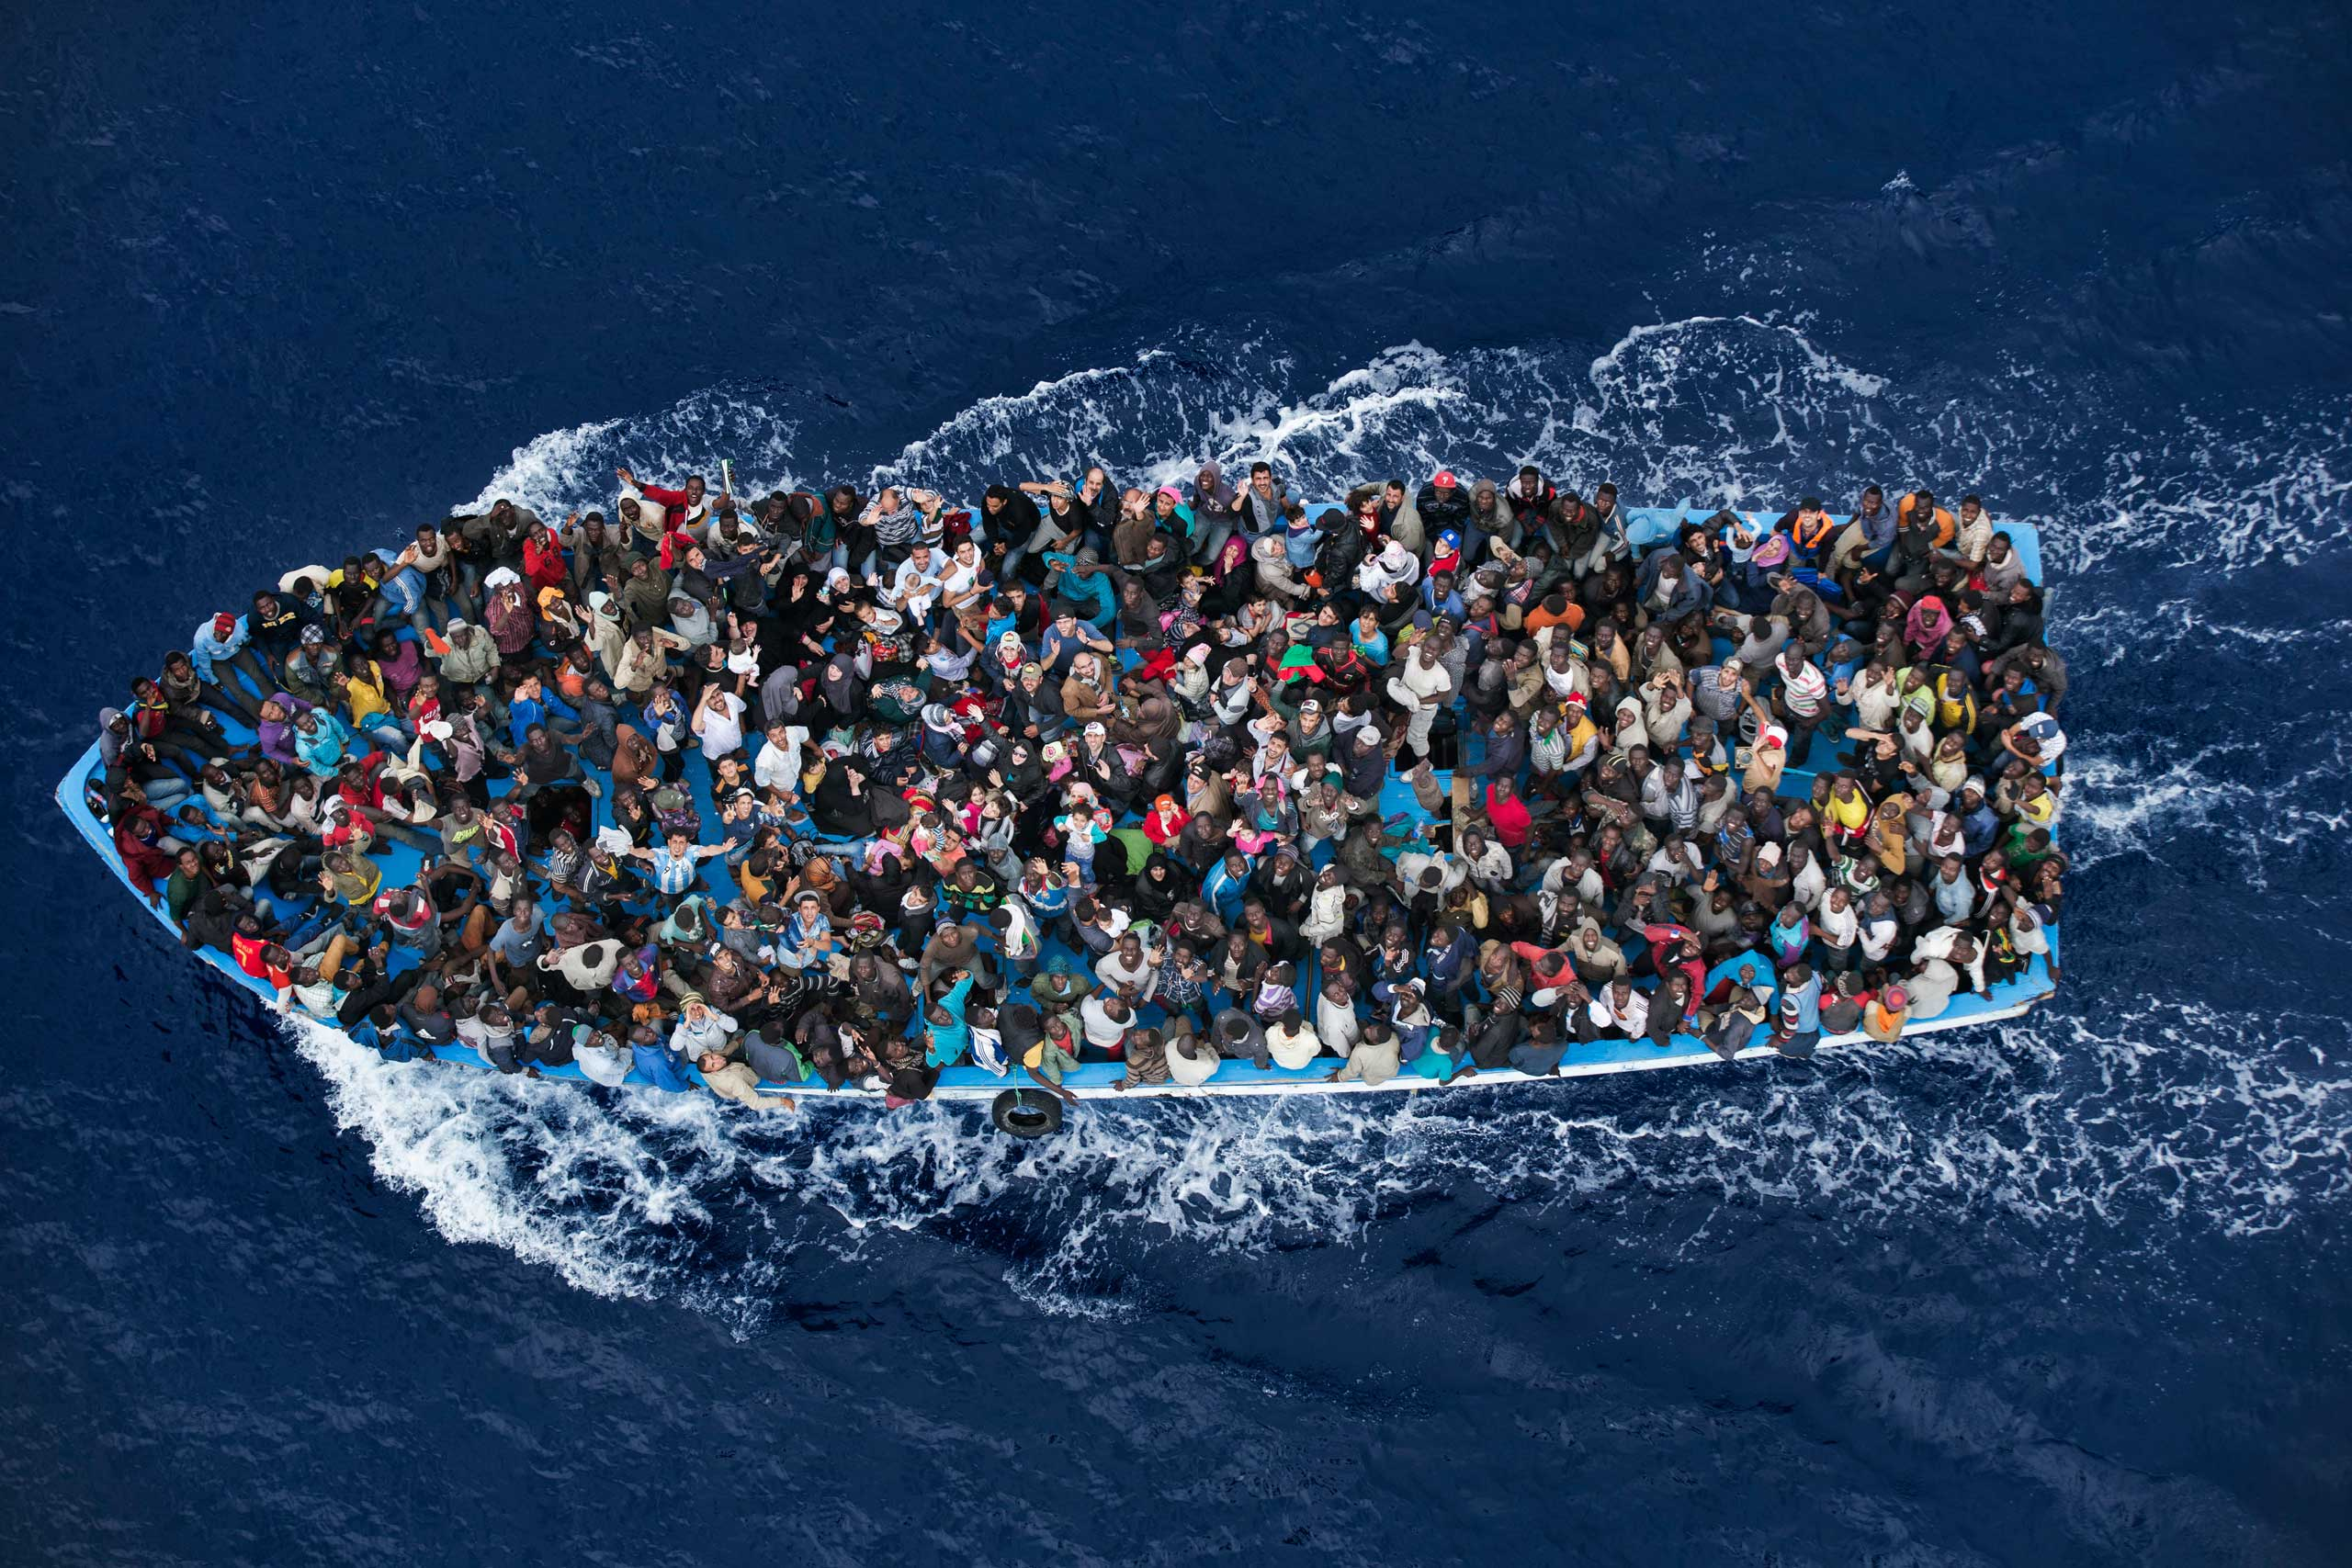 <b>Second Prize General News Category, Single</b>                                   Shipwrecked people are rescued aboard a boat 20 miles north of Libya by a frigate of the Italian navy.